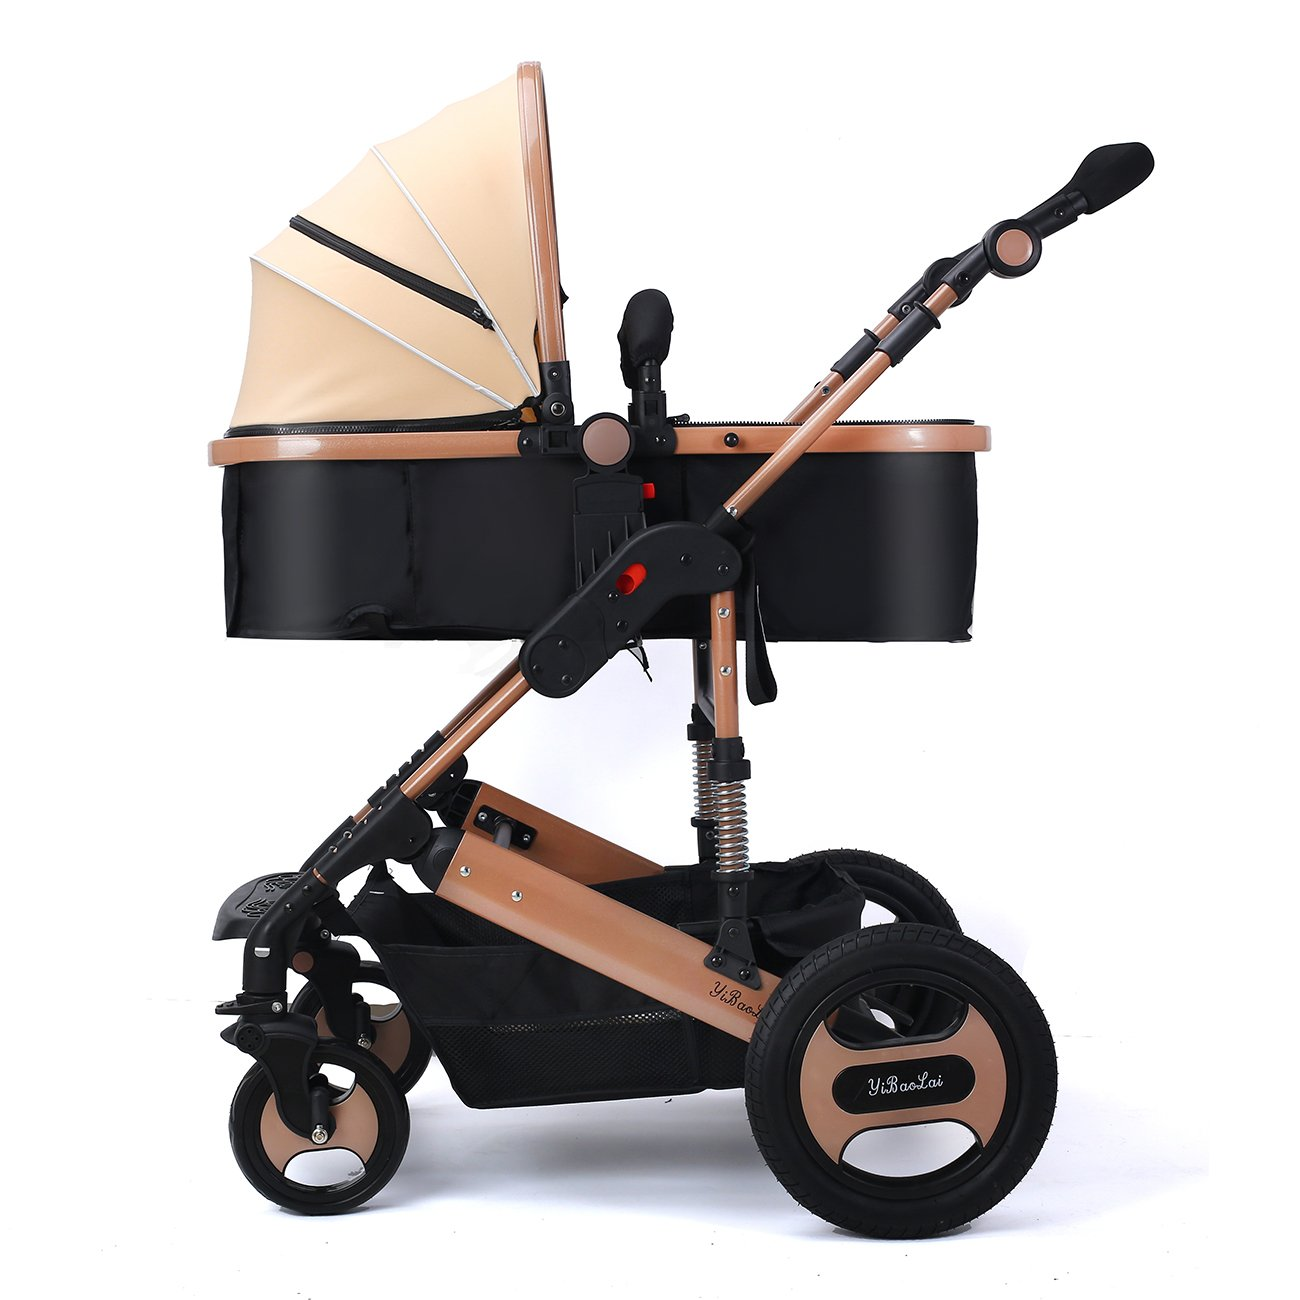 YBL Baby stroller High landscape can sit lie down light portable Children's trolley fold Baby carriage Winter and summer dual use City choice Four-wheeled baby stroller